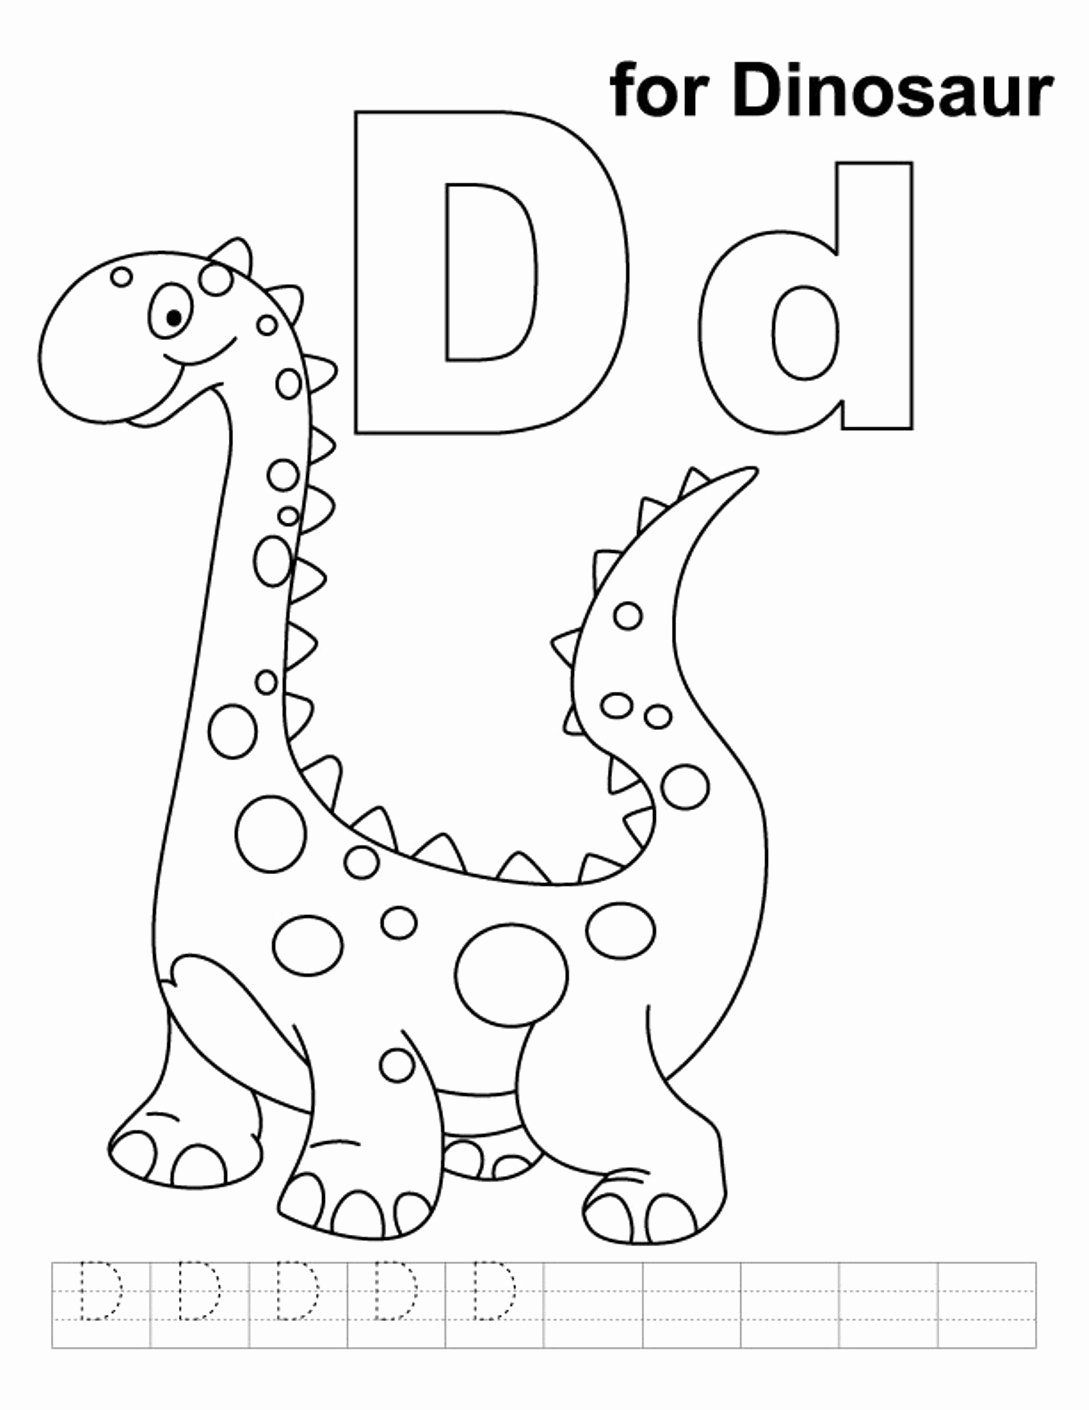 small resolution of Alphabet Coloring Worksheets for 3 Year Olds Elegant Dinosaur Printable  Alphabet Coloring Pages – Color… in 2020   Dinosaur coloring pages